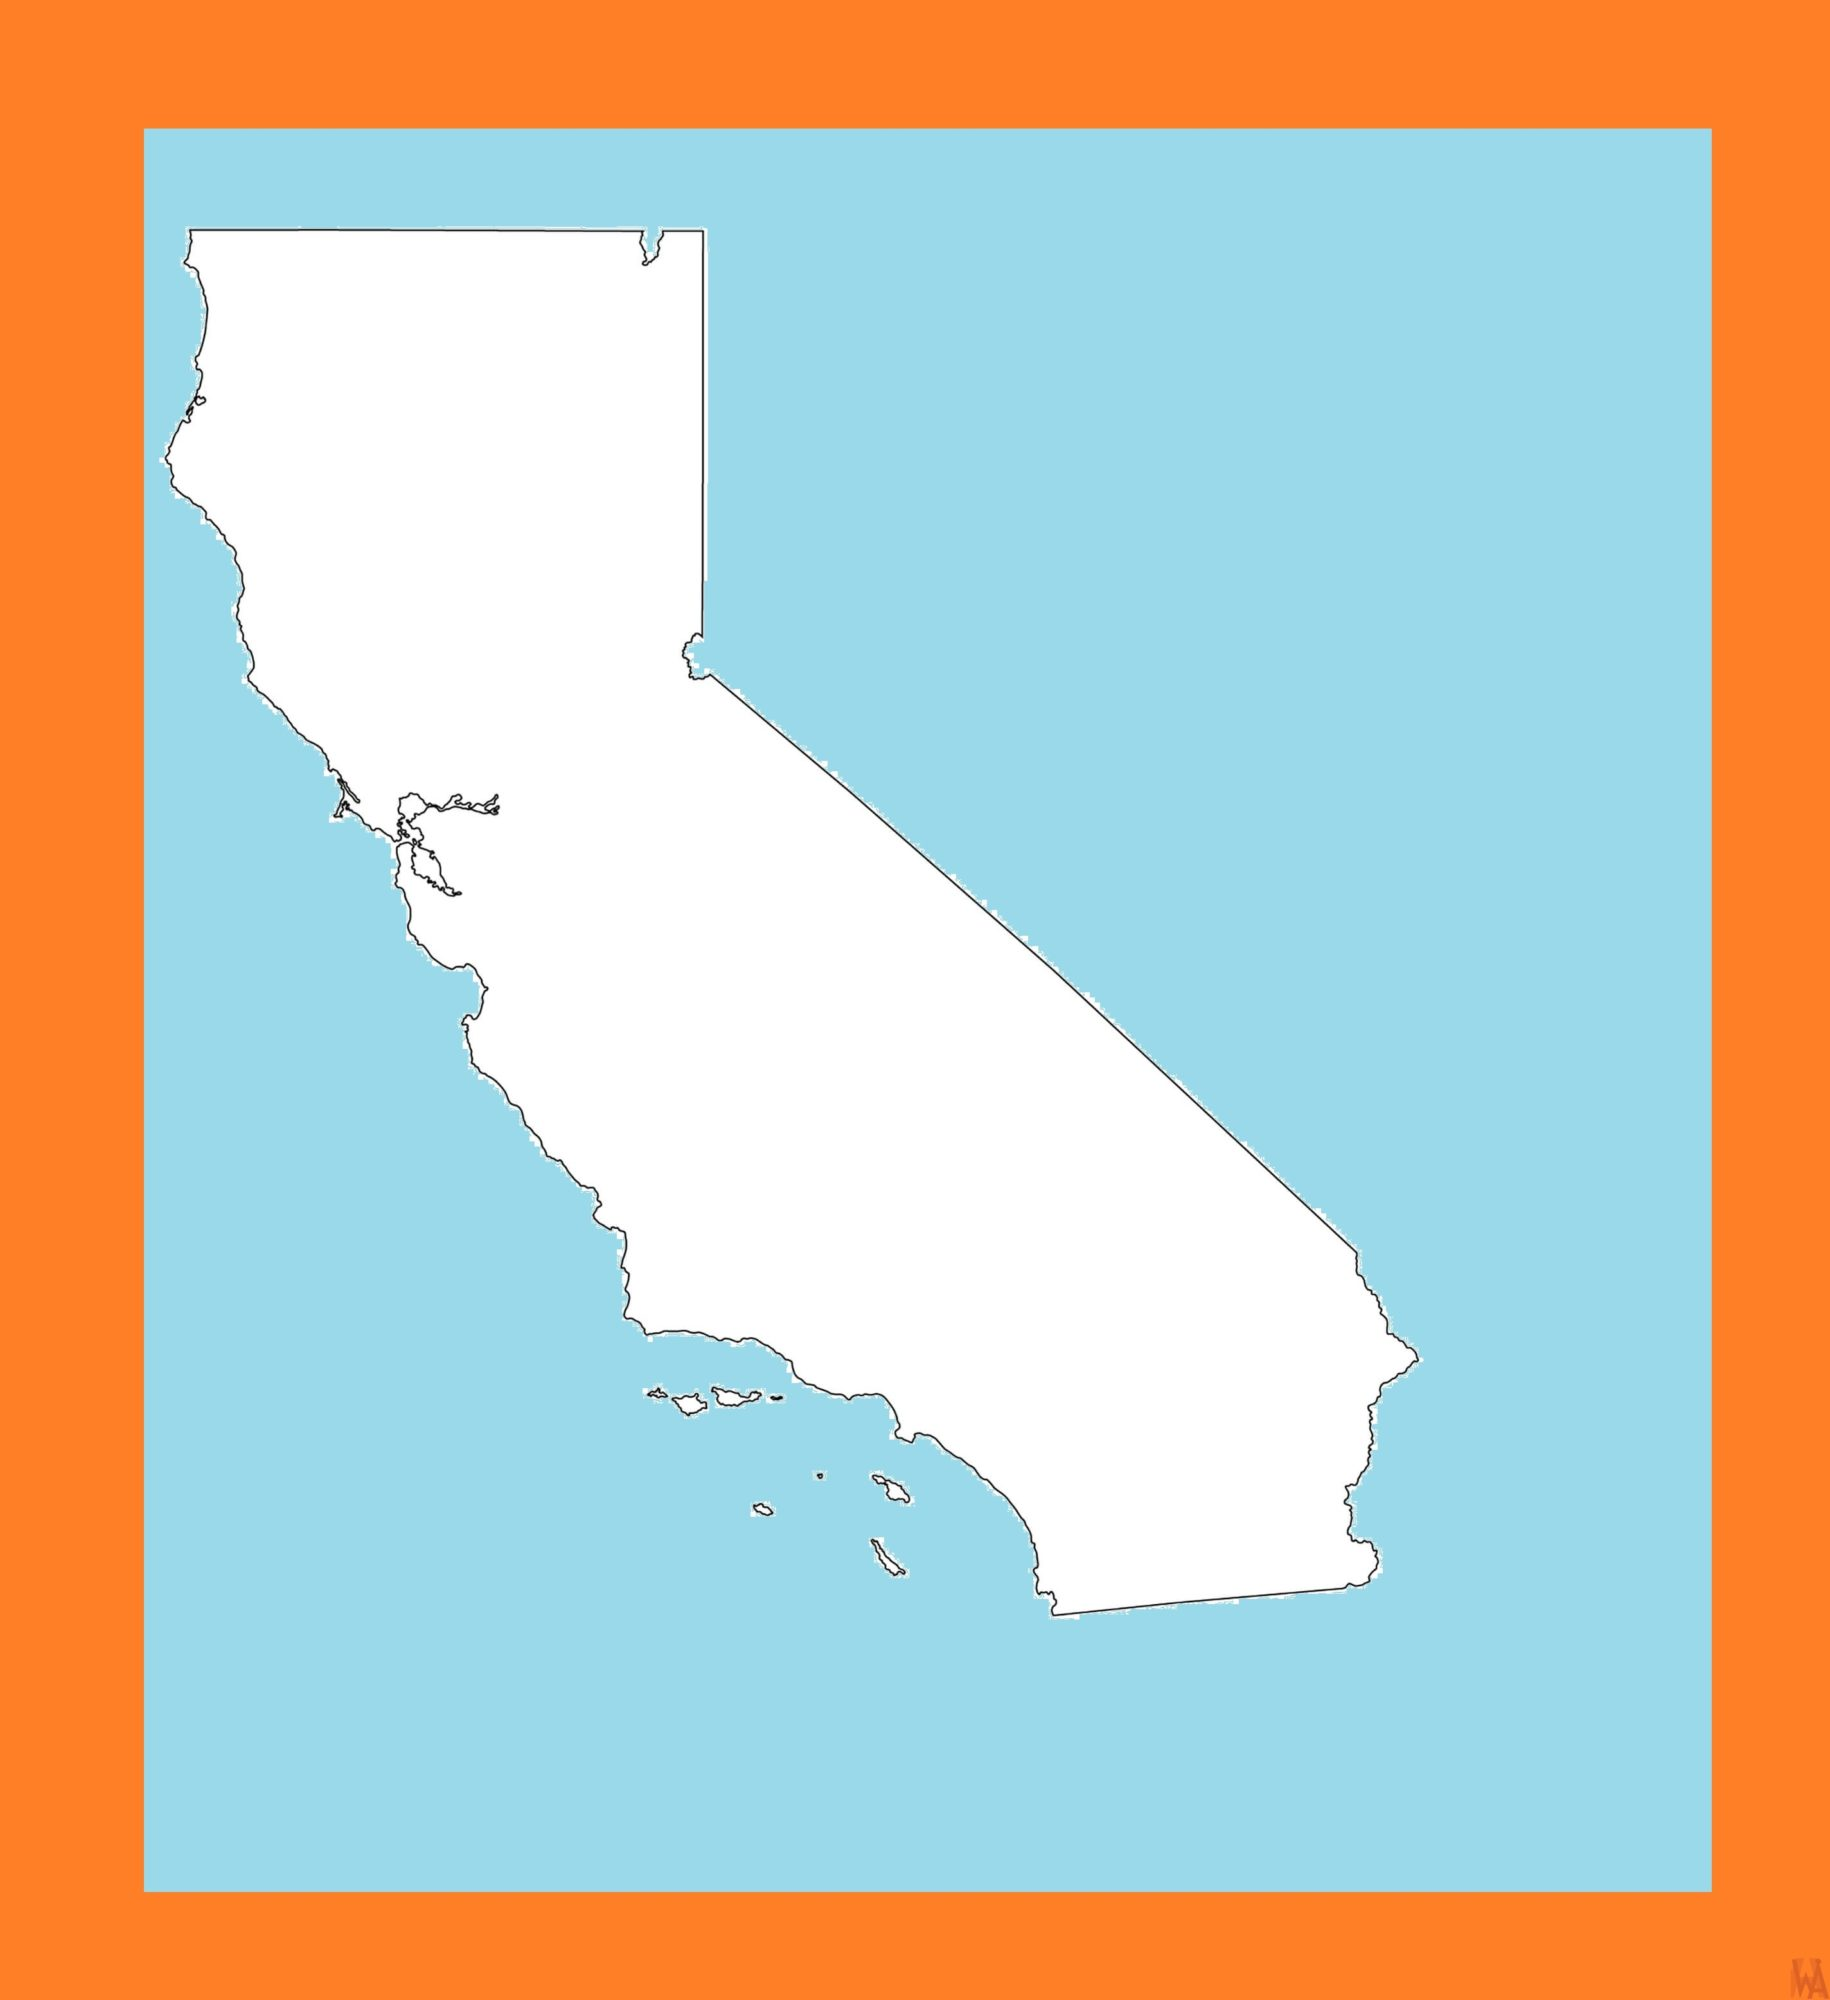 California Blank Outline Map – 1  | Blank Outline Map of California